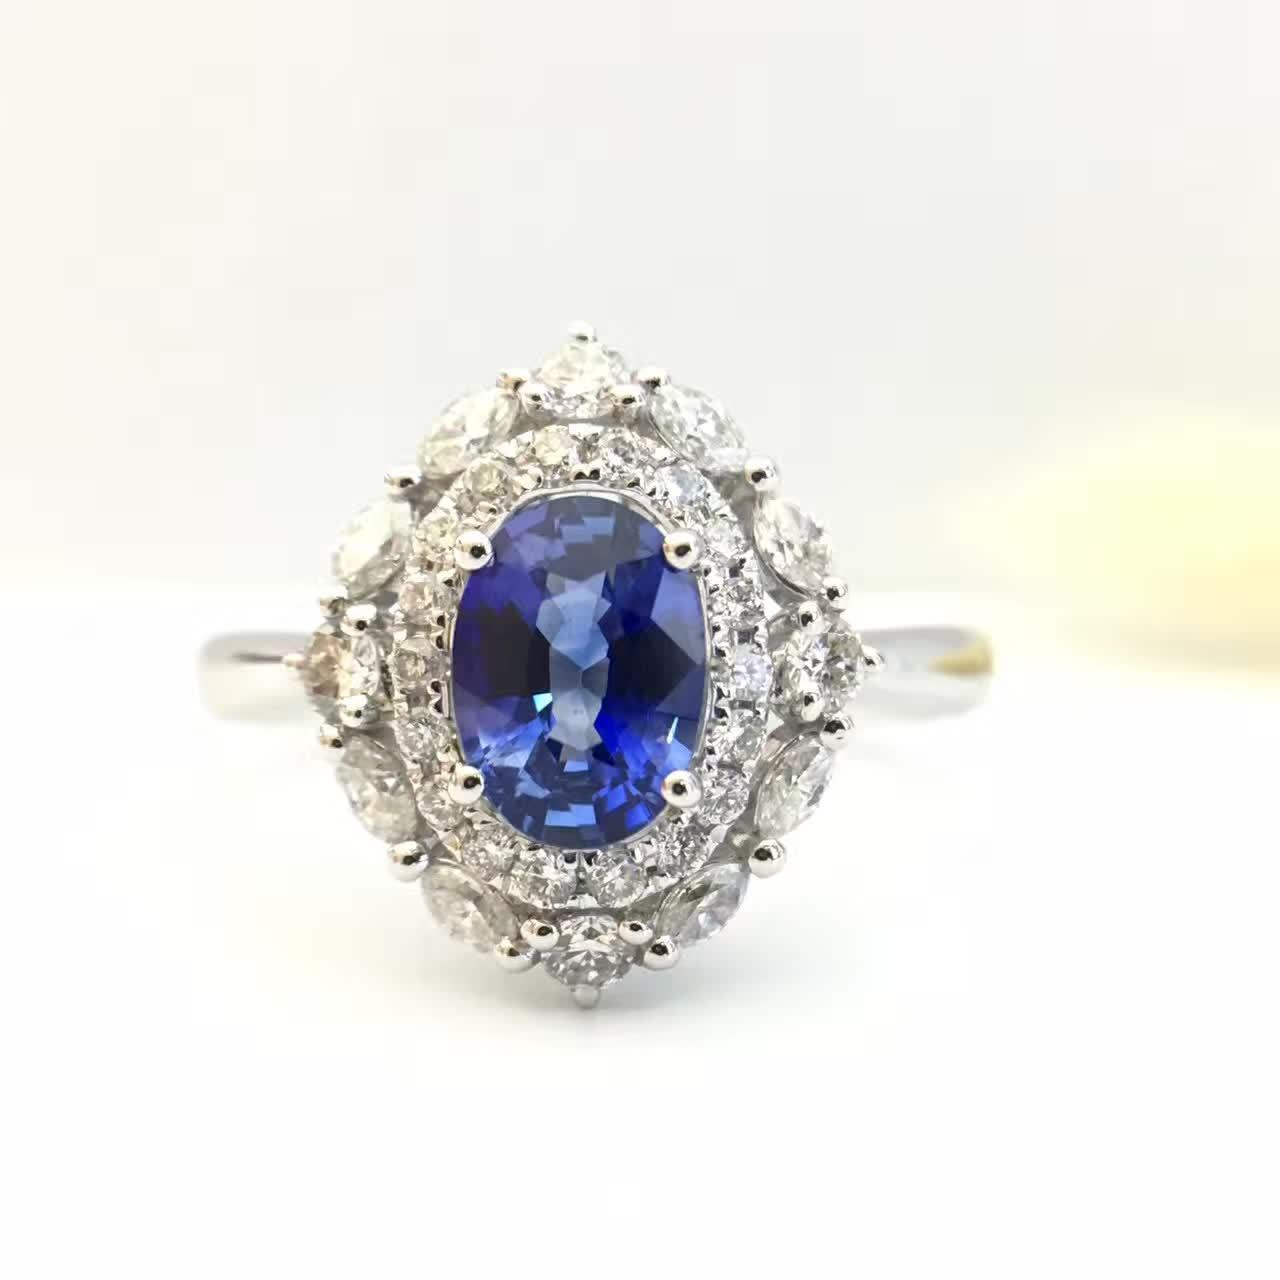 0.958ct+0.479ct 18K Gold Natural Sapphire Women Ring with Diamond Setting 2016 New Fine Jewelry Wedding Band Engagement